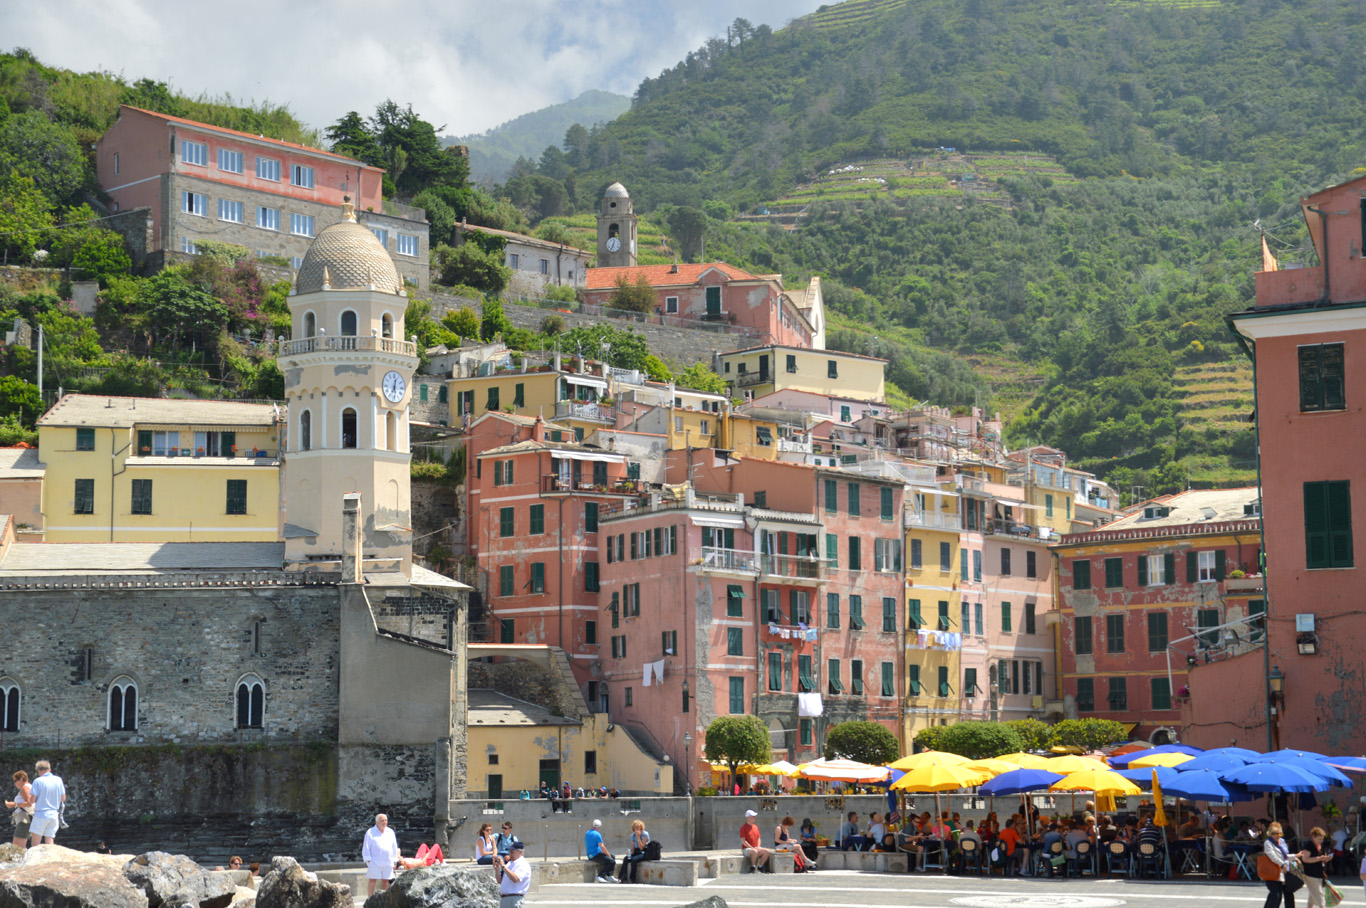 The fourth village - Vernazza seen from the boat (number 5 on the map)